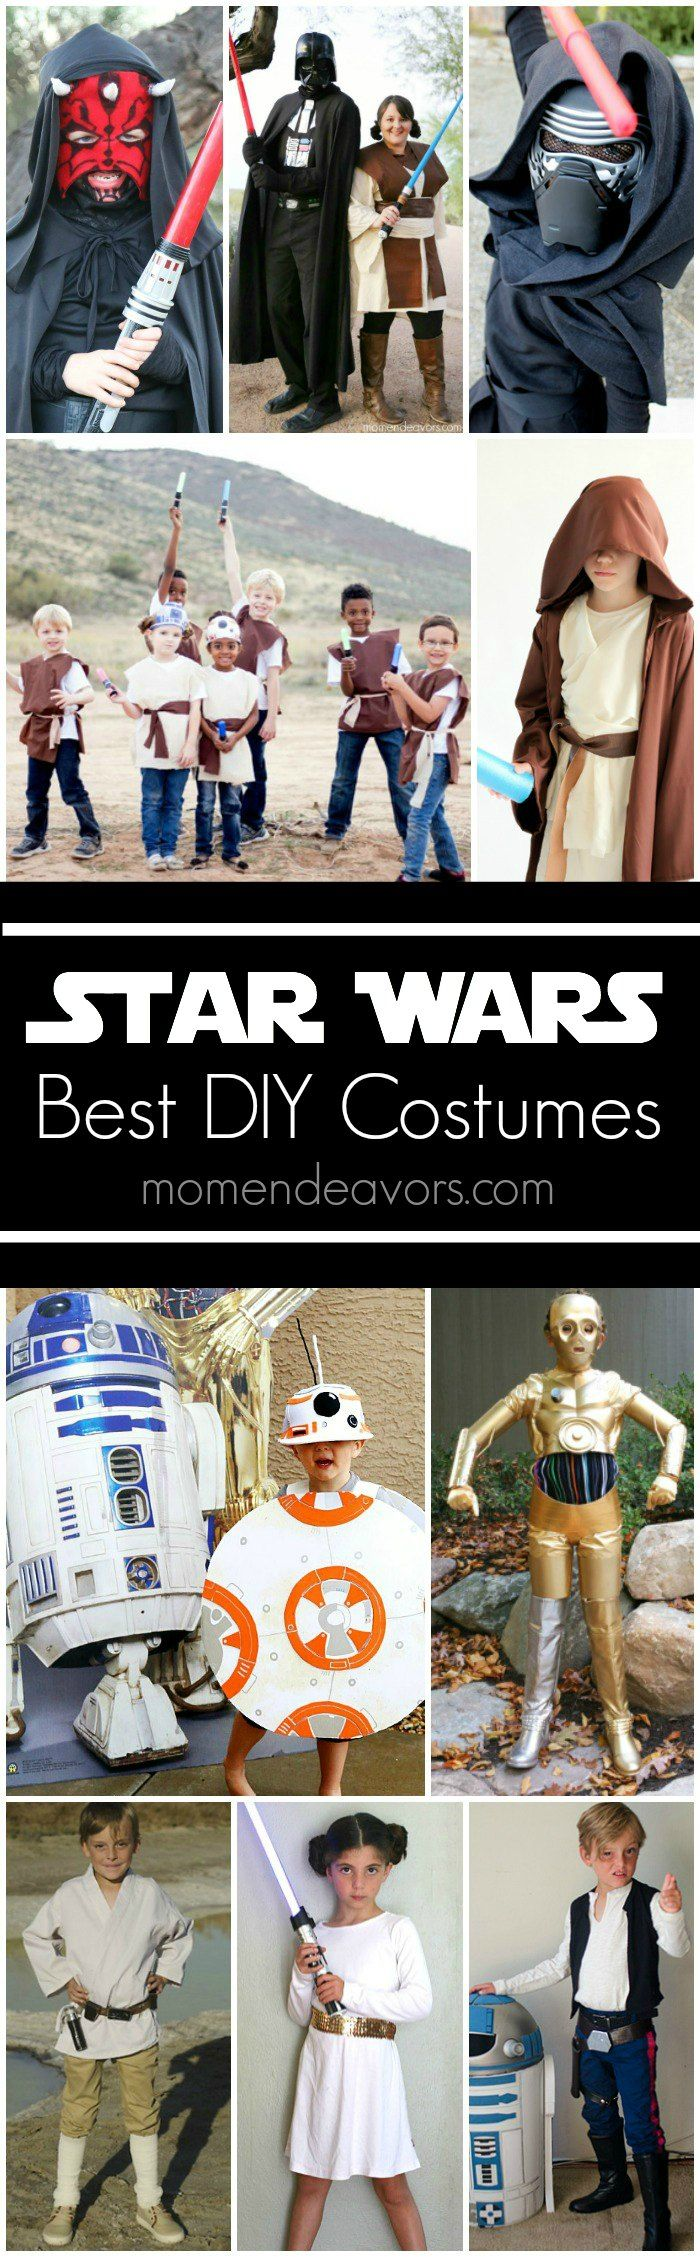 Best DIY Star Wars Halloween Costumes